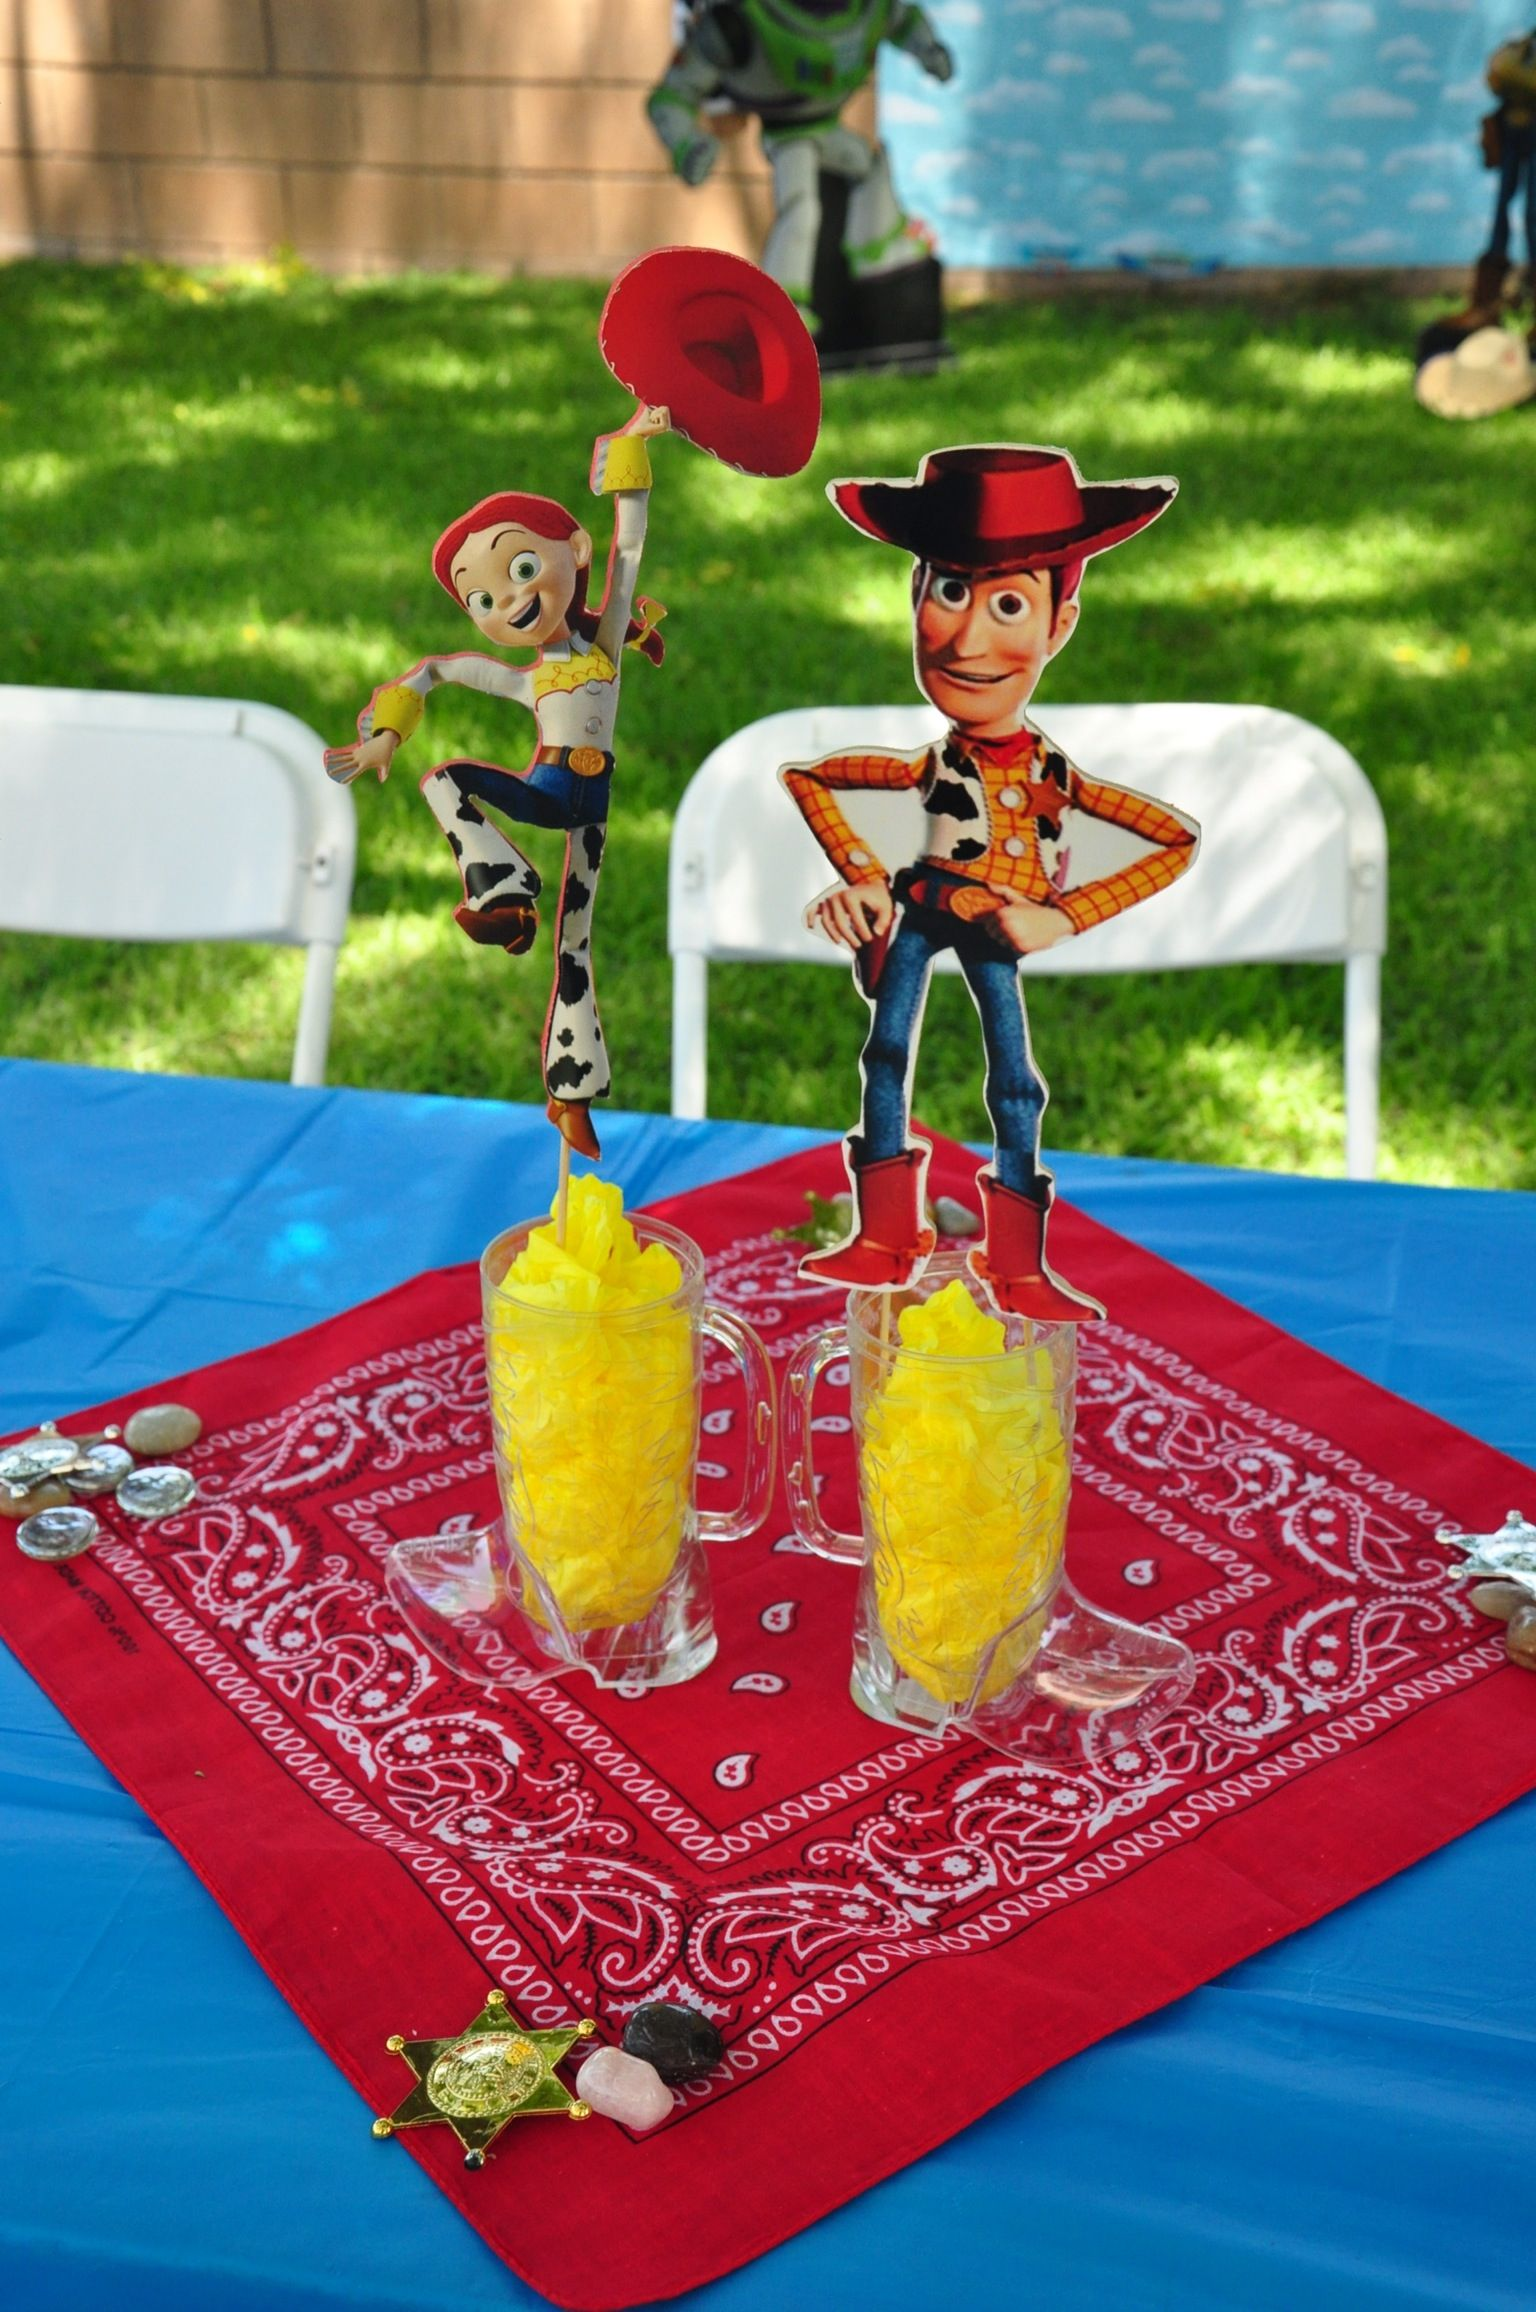 Toy Story Party Ideas Decorations : Toy story centerpiece my craft projects pinterest